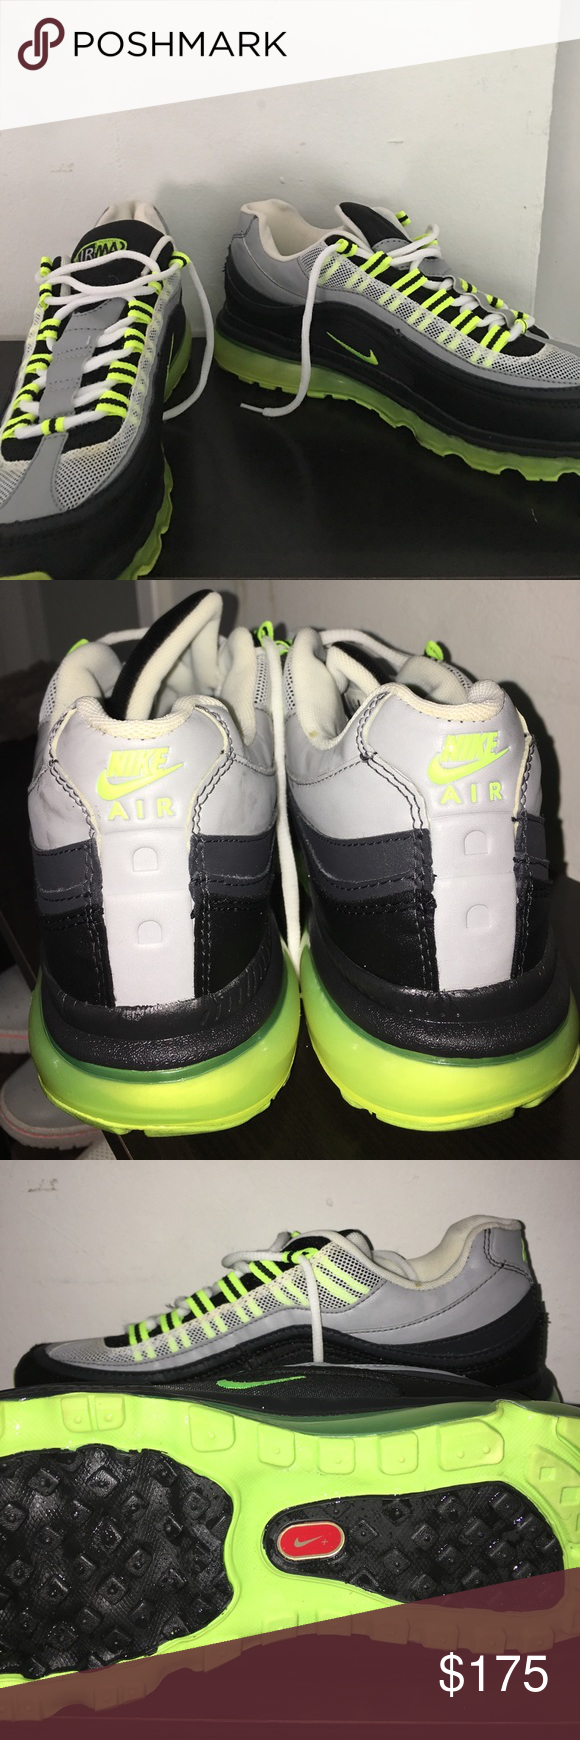 a876eb6af82 Nike Air Max 24-7 MENS Worn Twice Over The Summer (Semi-New) Neon-Green